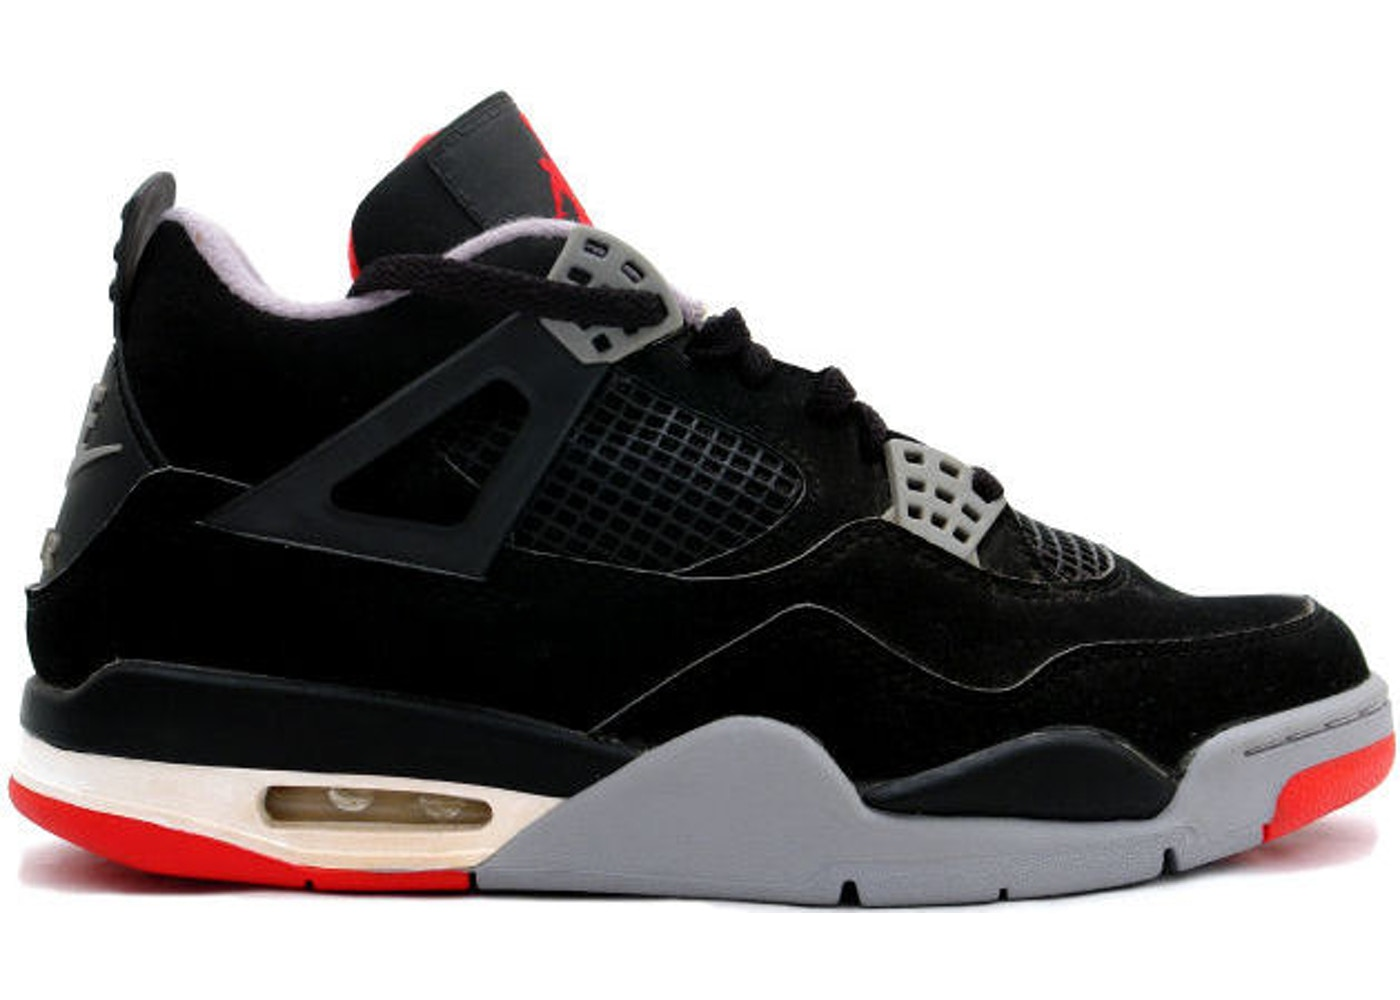 buy online 3485b afefa Jordan 4 Retro Black Cement (1999) - 136013-001